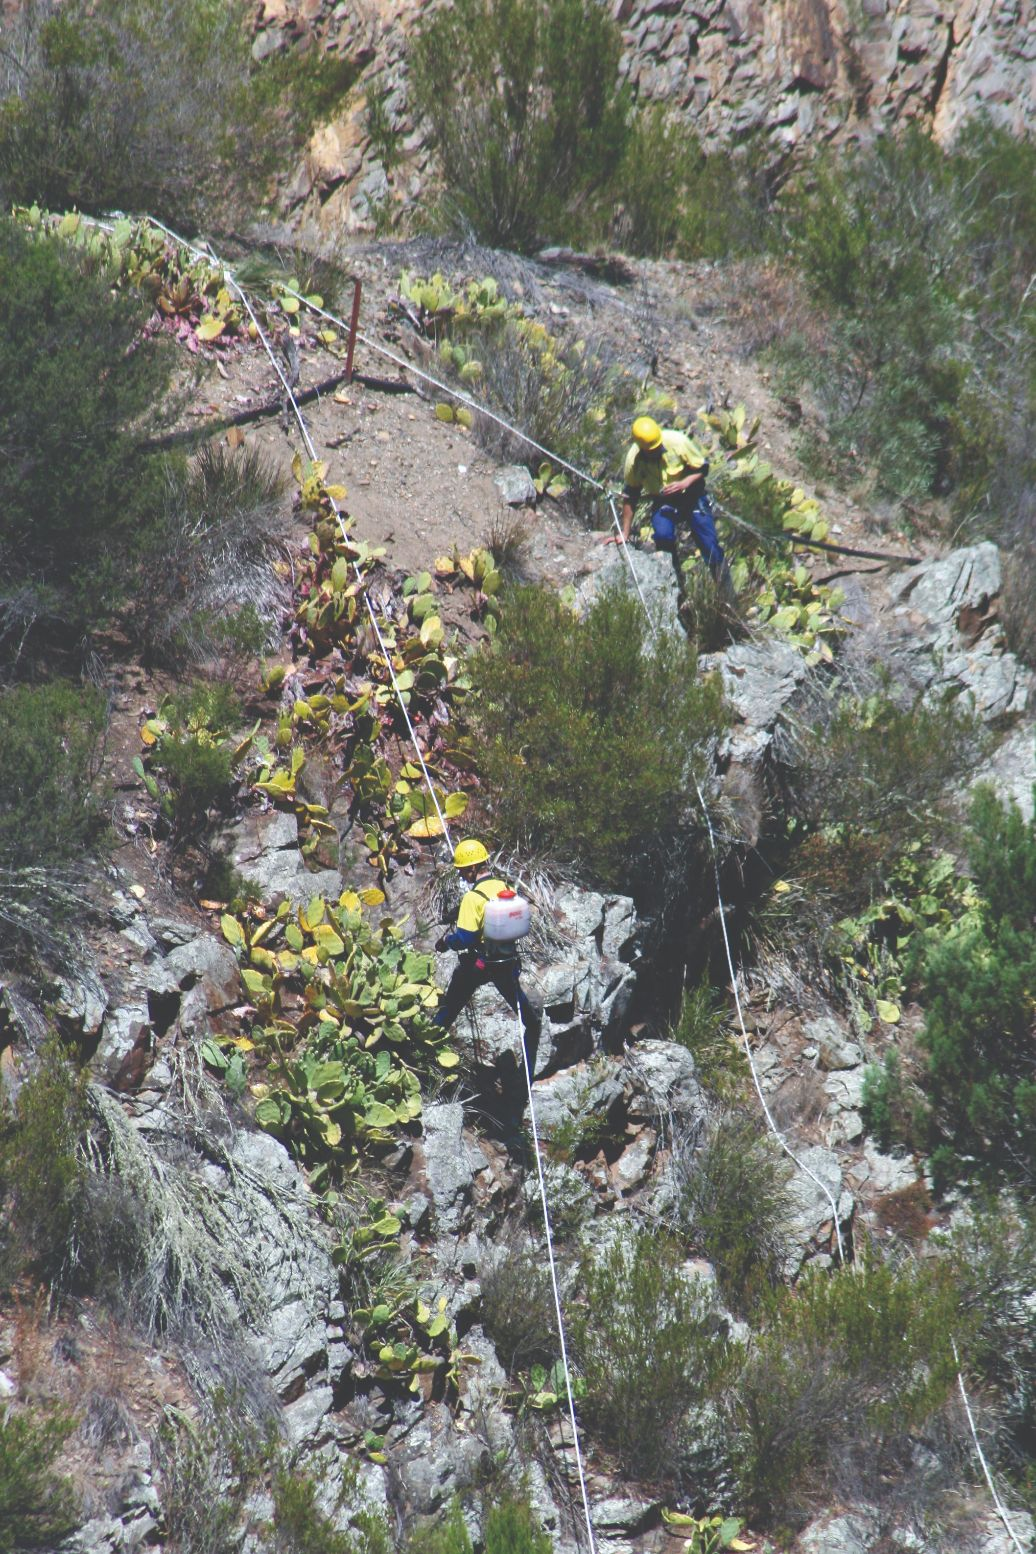 Two men abseiling down a cliff covered in Prickly Pear